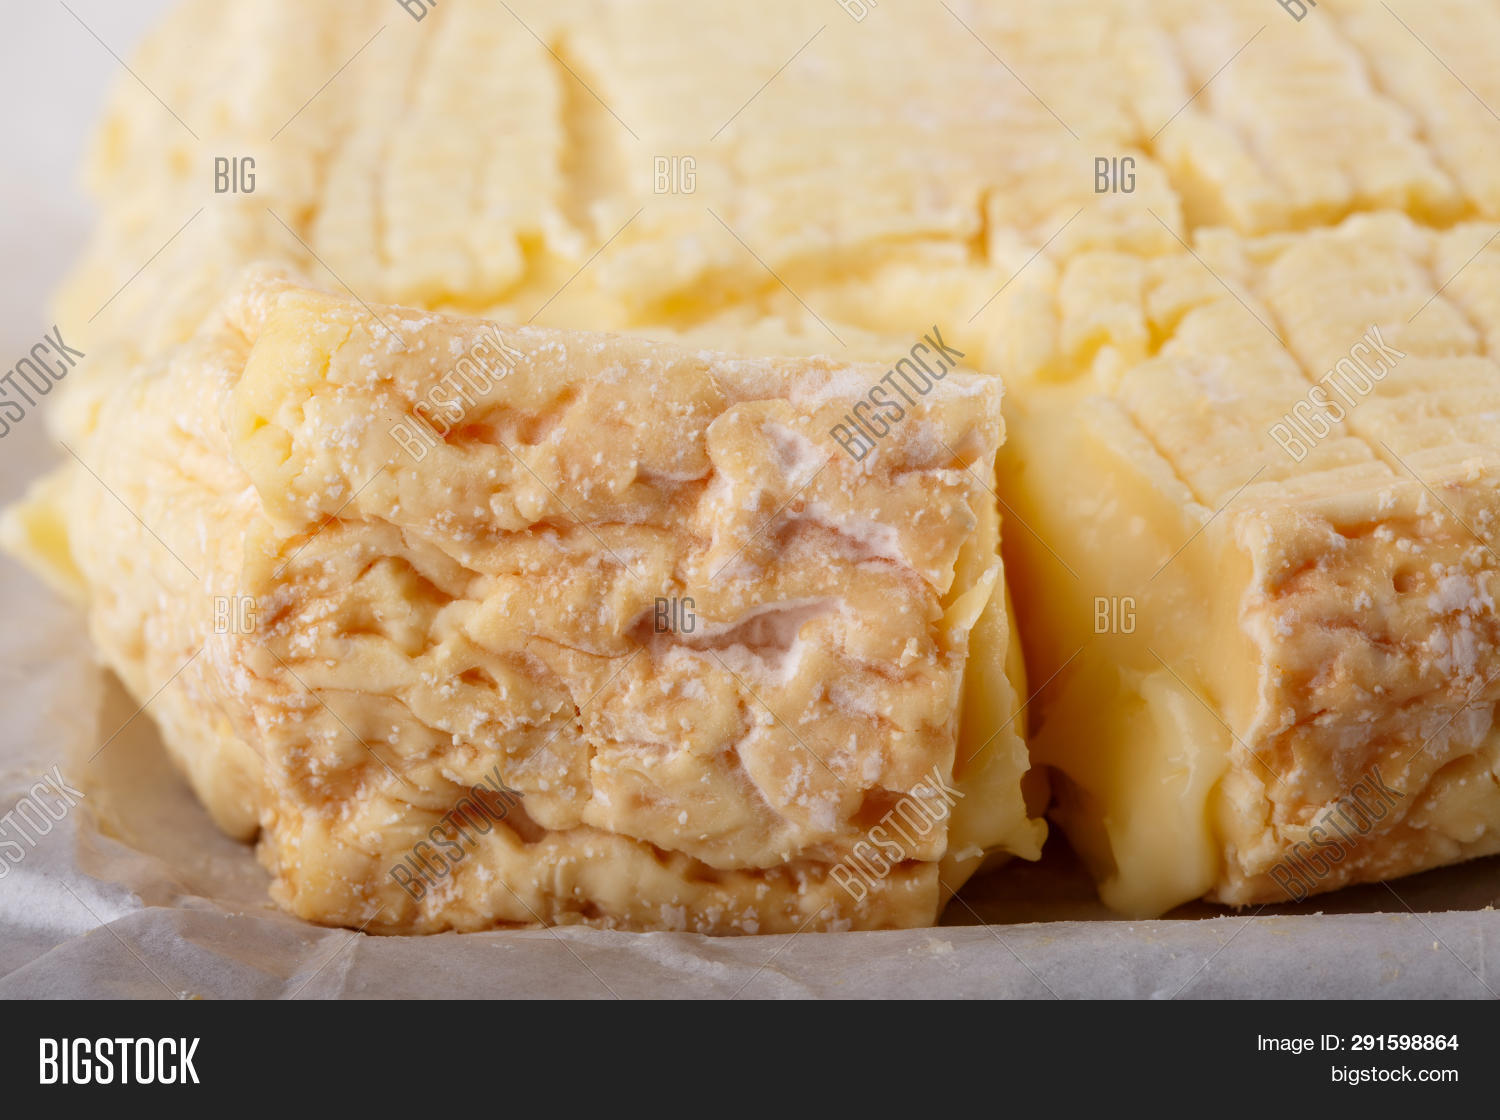 Pont L Eveque Cheese Image Photo Free Trial Bigstock